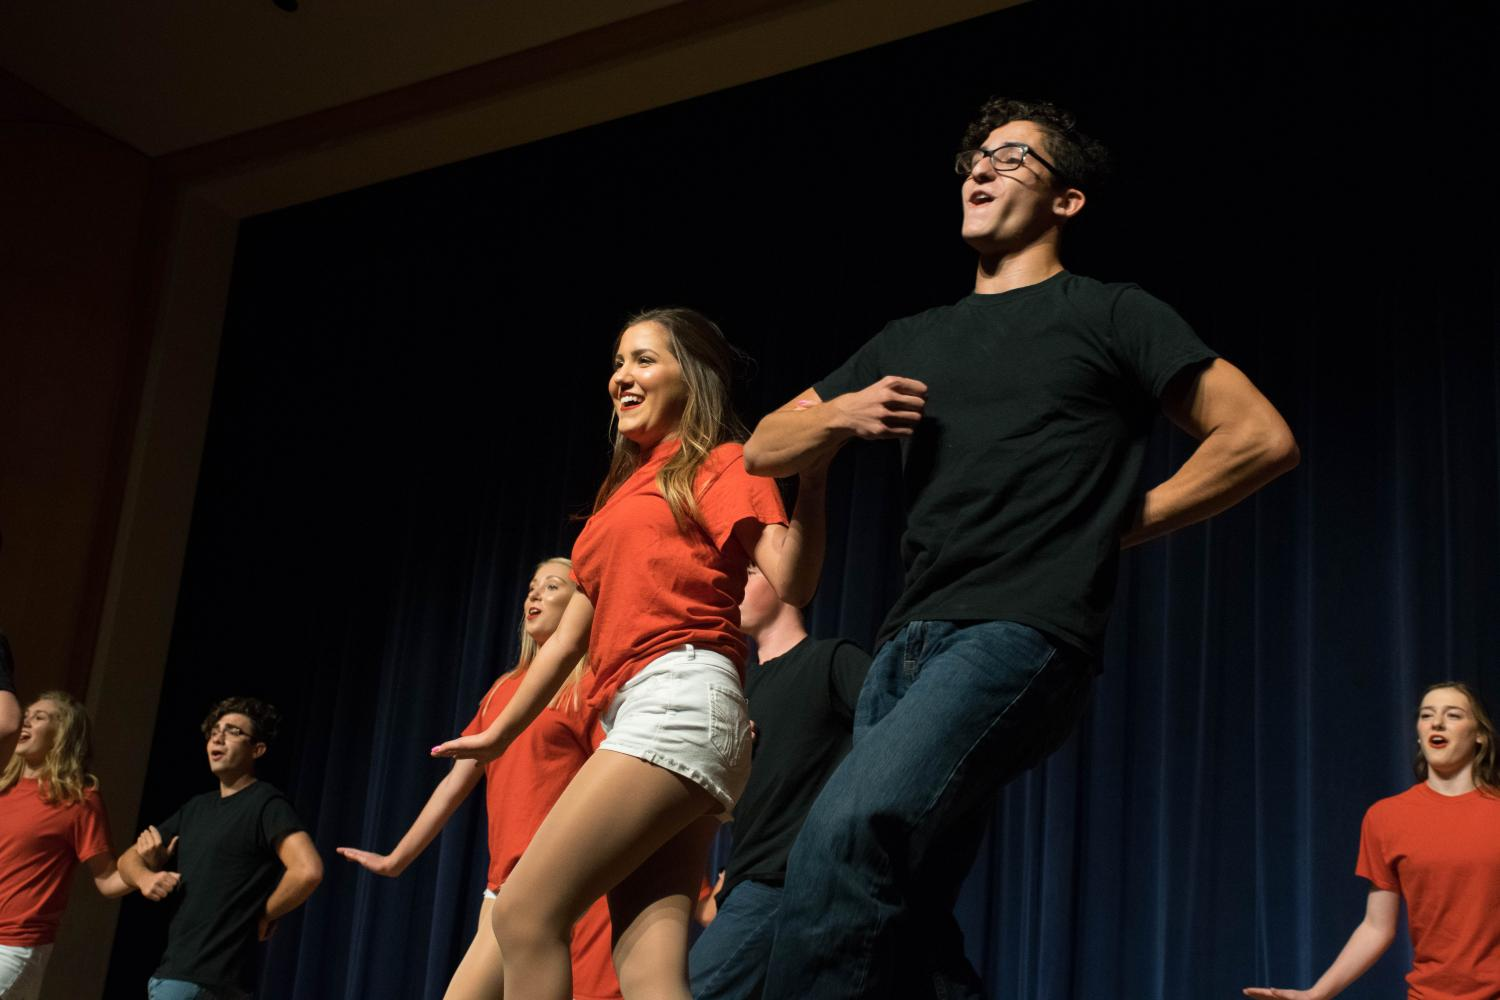 Arm in arm, seniors Tristan Rios and Noah Kahn dance in the Chamber choir's parent preview. Both the Chambers and Classy Ladies performed on Sept. 6 after just three weeks of preparation.